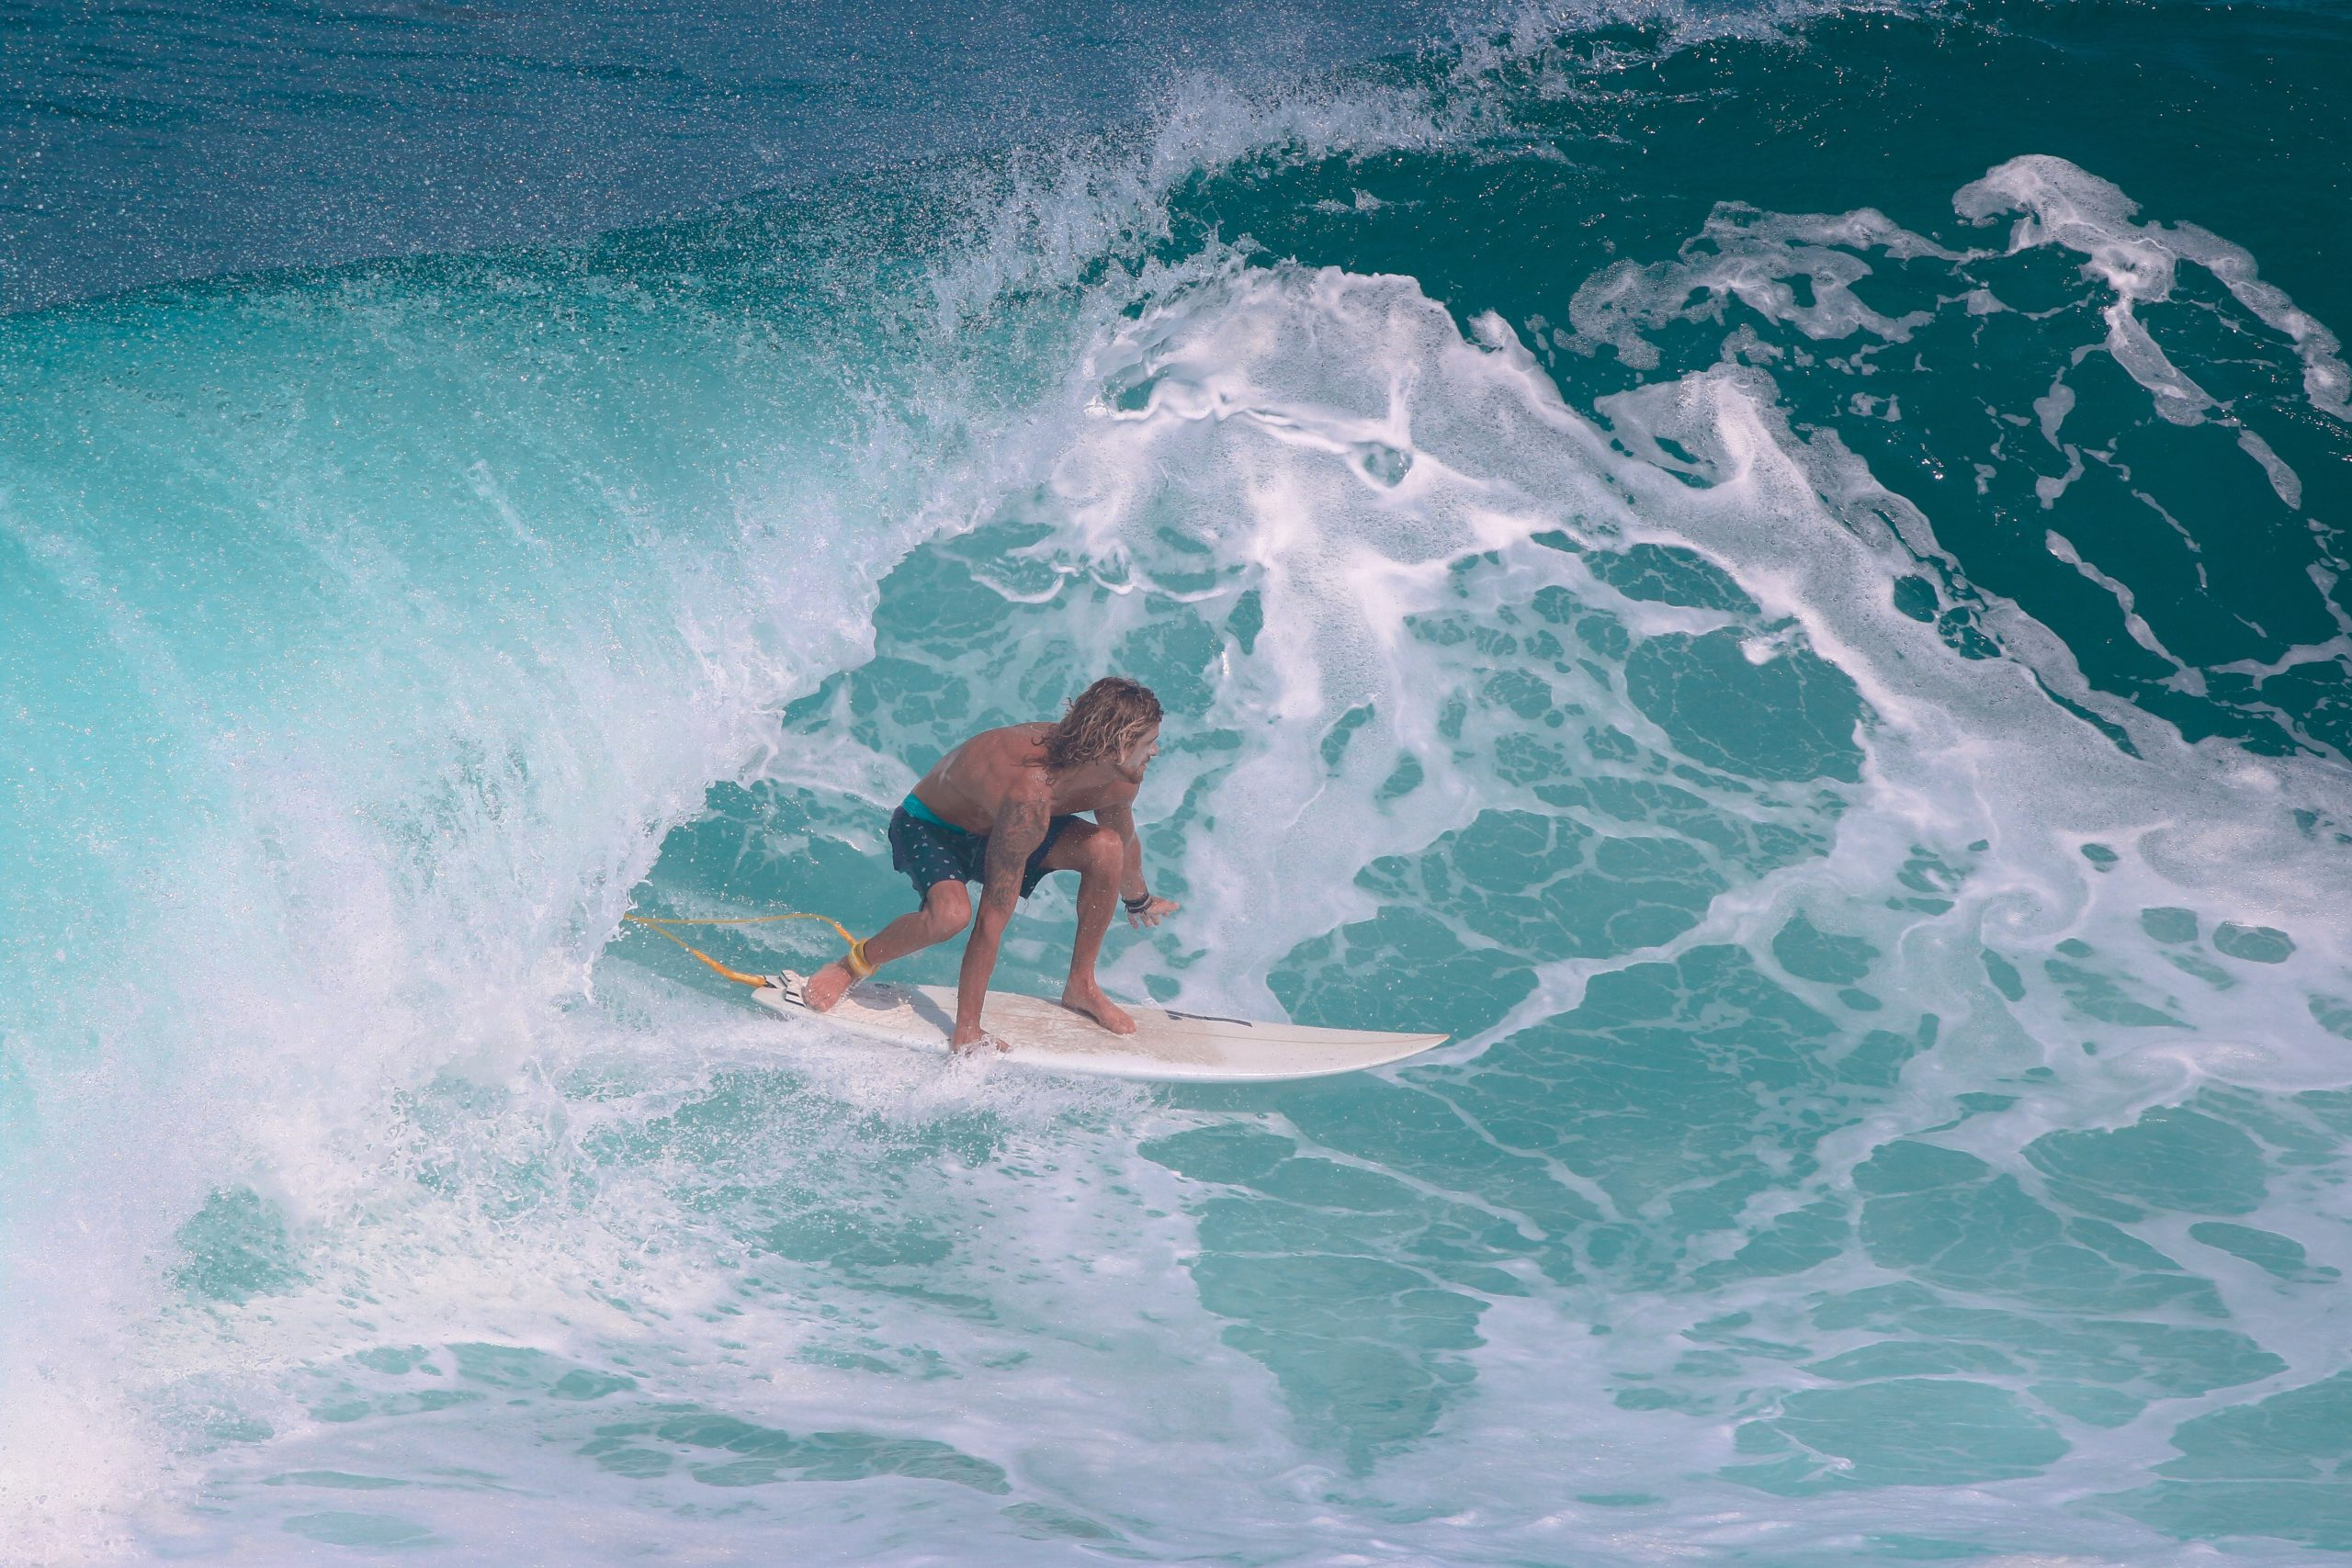 Surfing For Youth - More Than Just Surfing